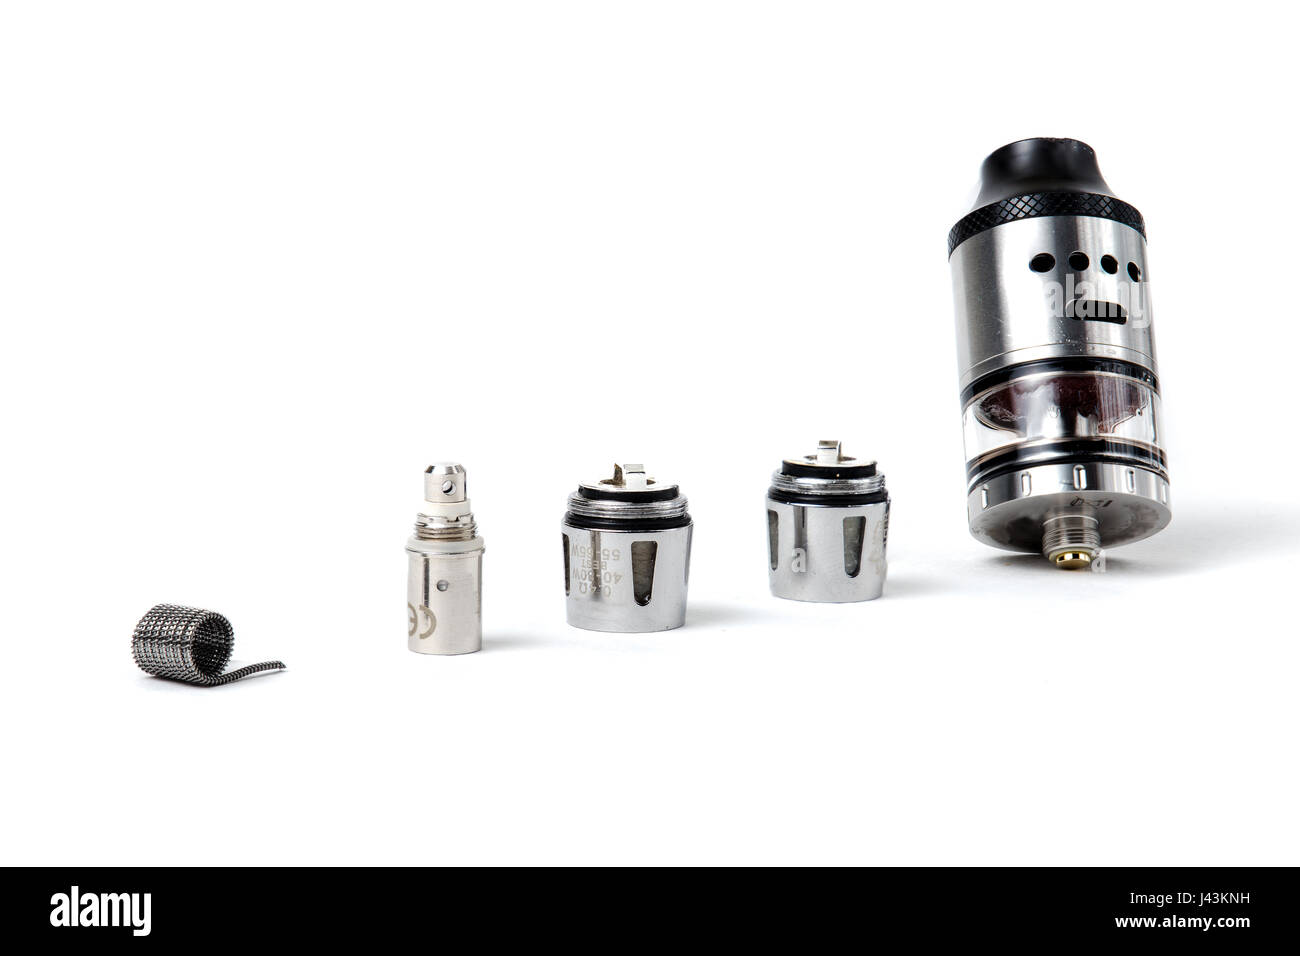 Tanks, coils and atomizers - Stock Image